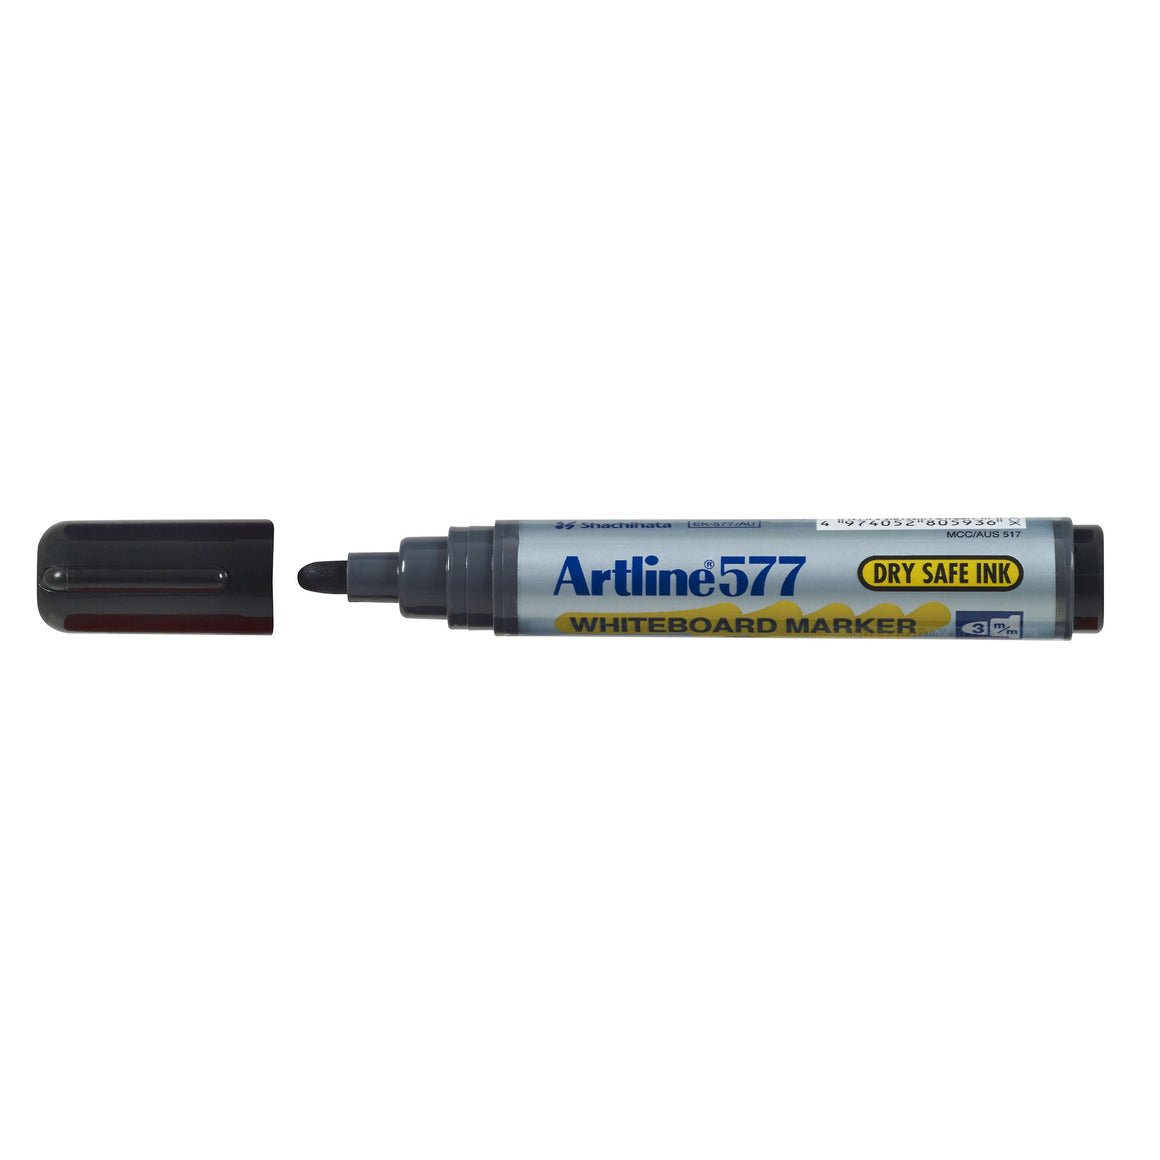 Artline 577 Whiteboard Marker Bullet Black